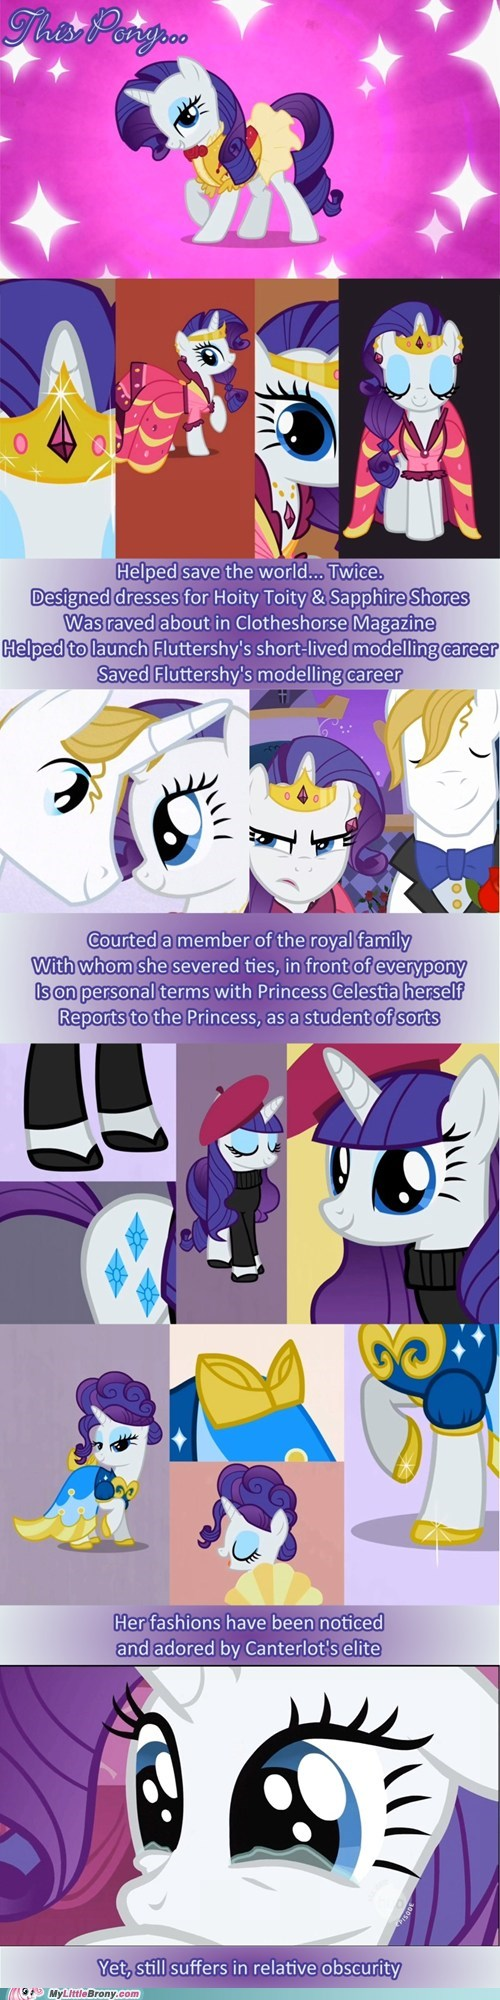 Rarity Has to Introduce Herself to Everypony